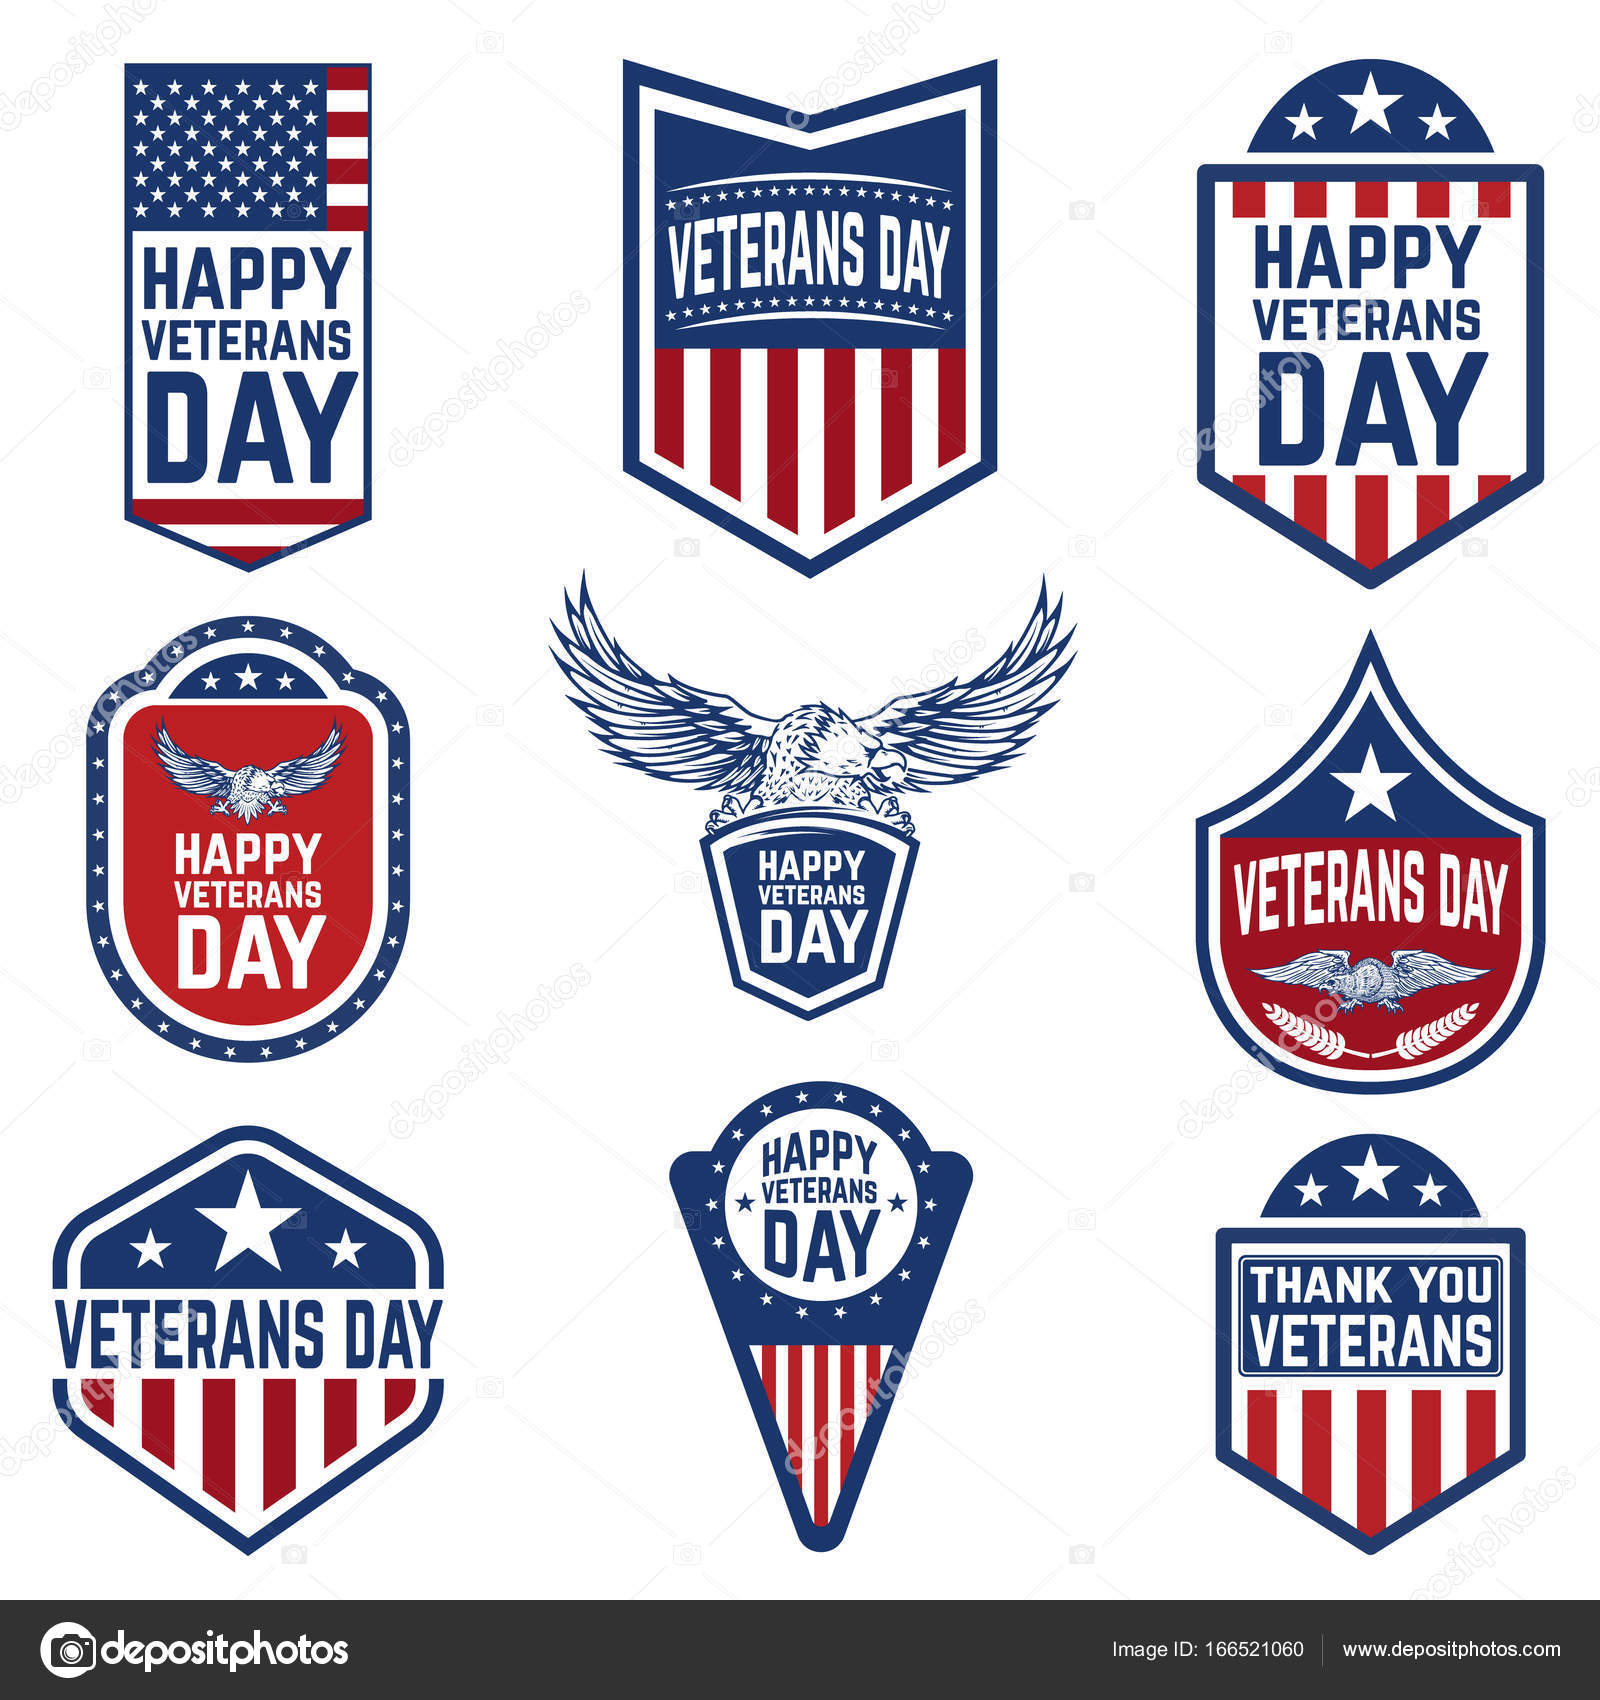 Set of veterans day emblems usa culture stock vector art li set of veterans day emblems usa culture stock vector biocorpaavc